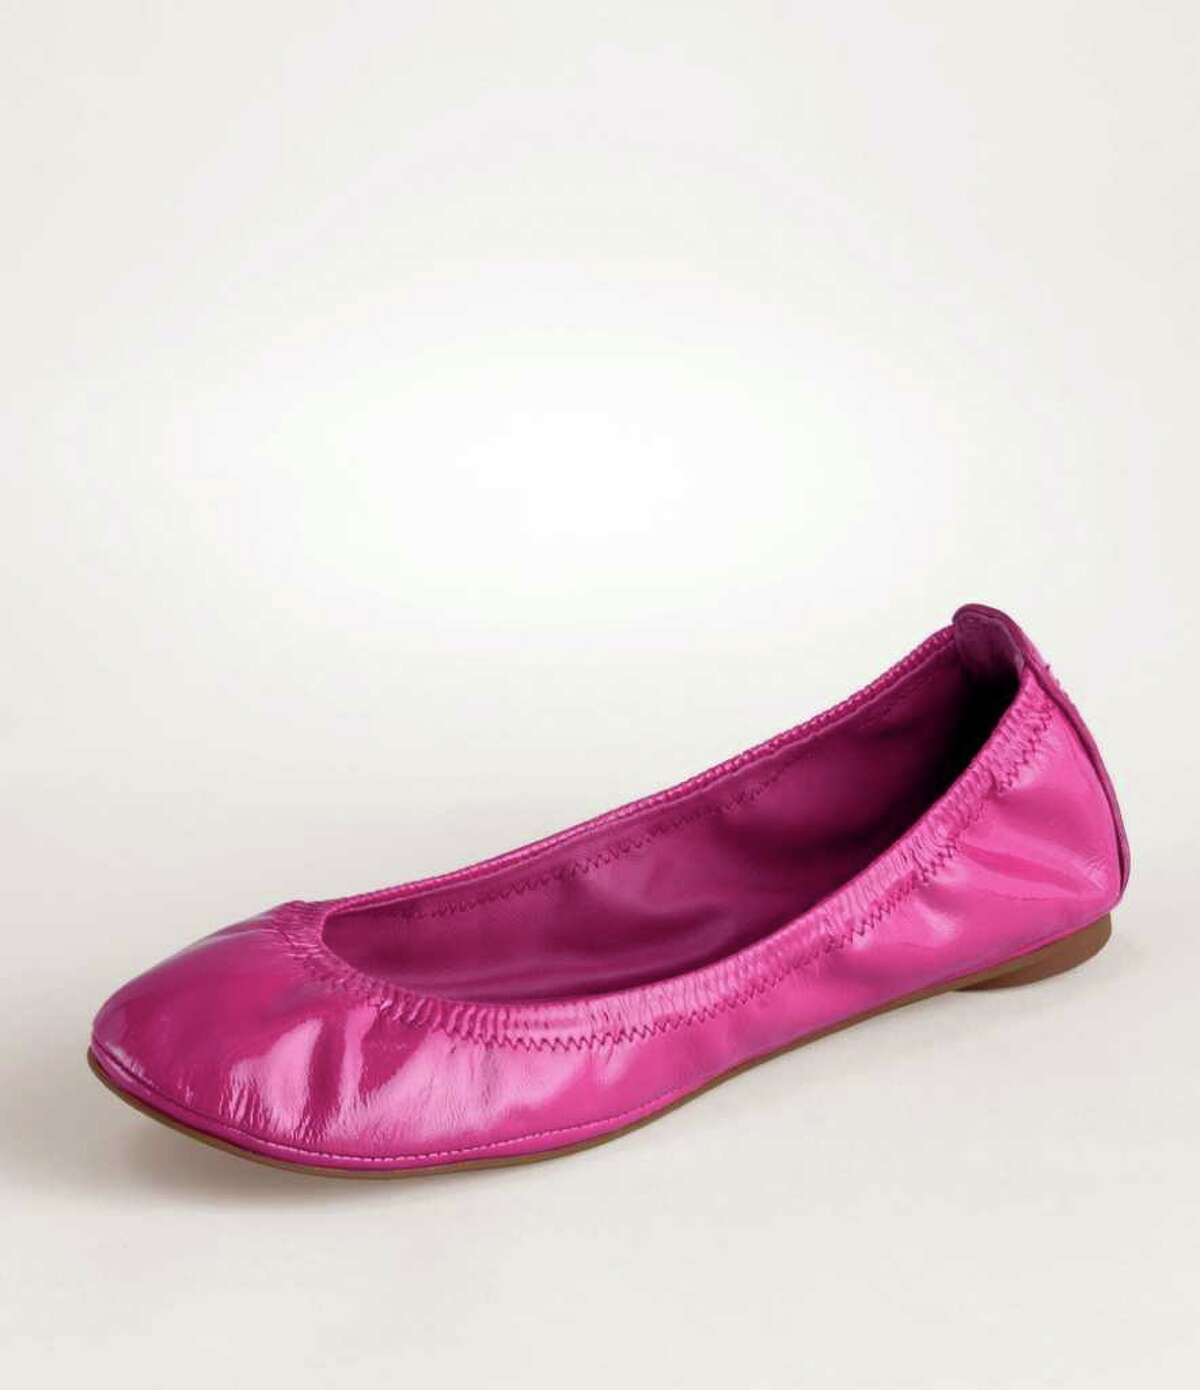 Tory Burch?s Eddie Ballet Flat, $178 at Tory Burch stores and toryburch.com, is a great gift choice.